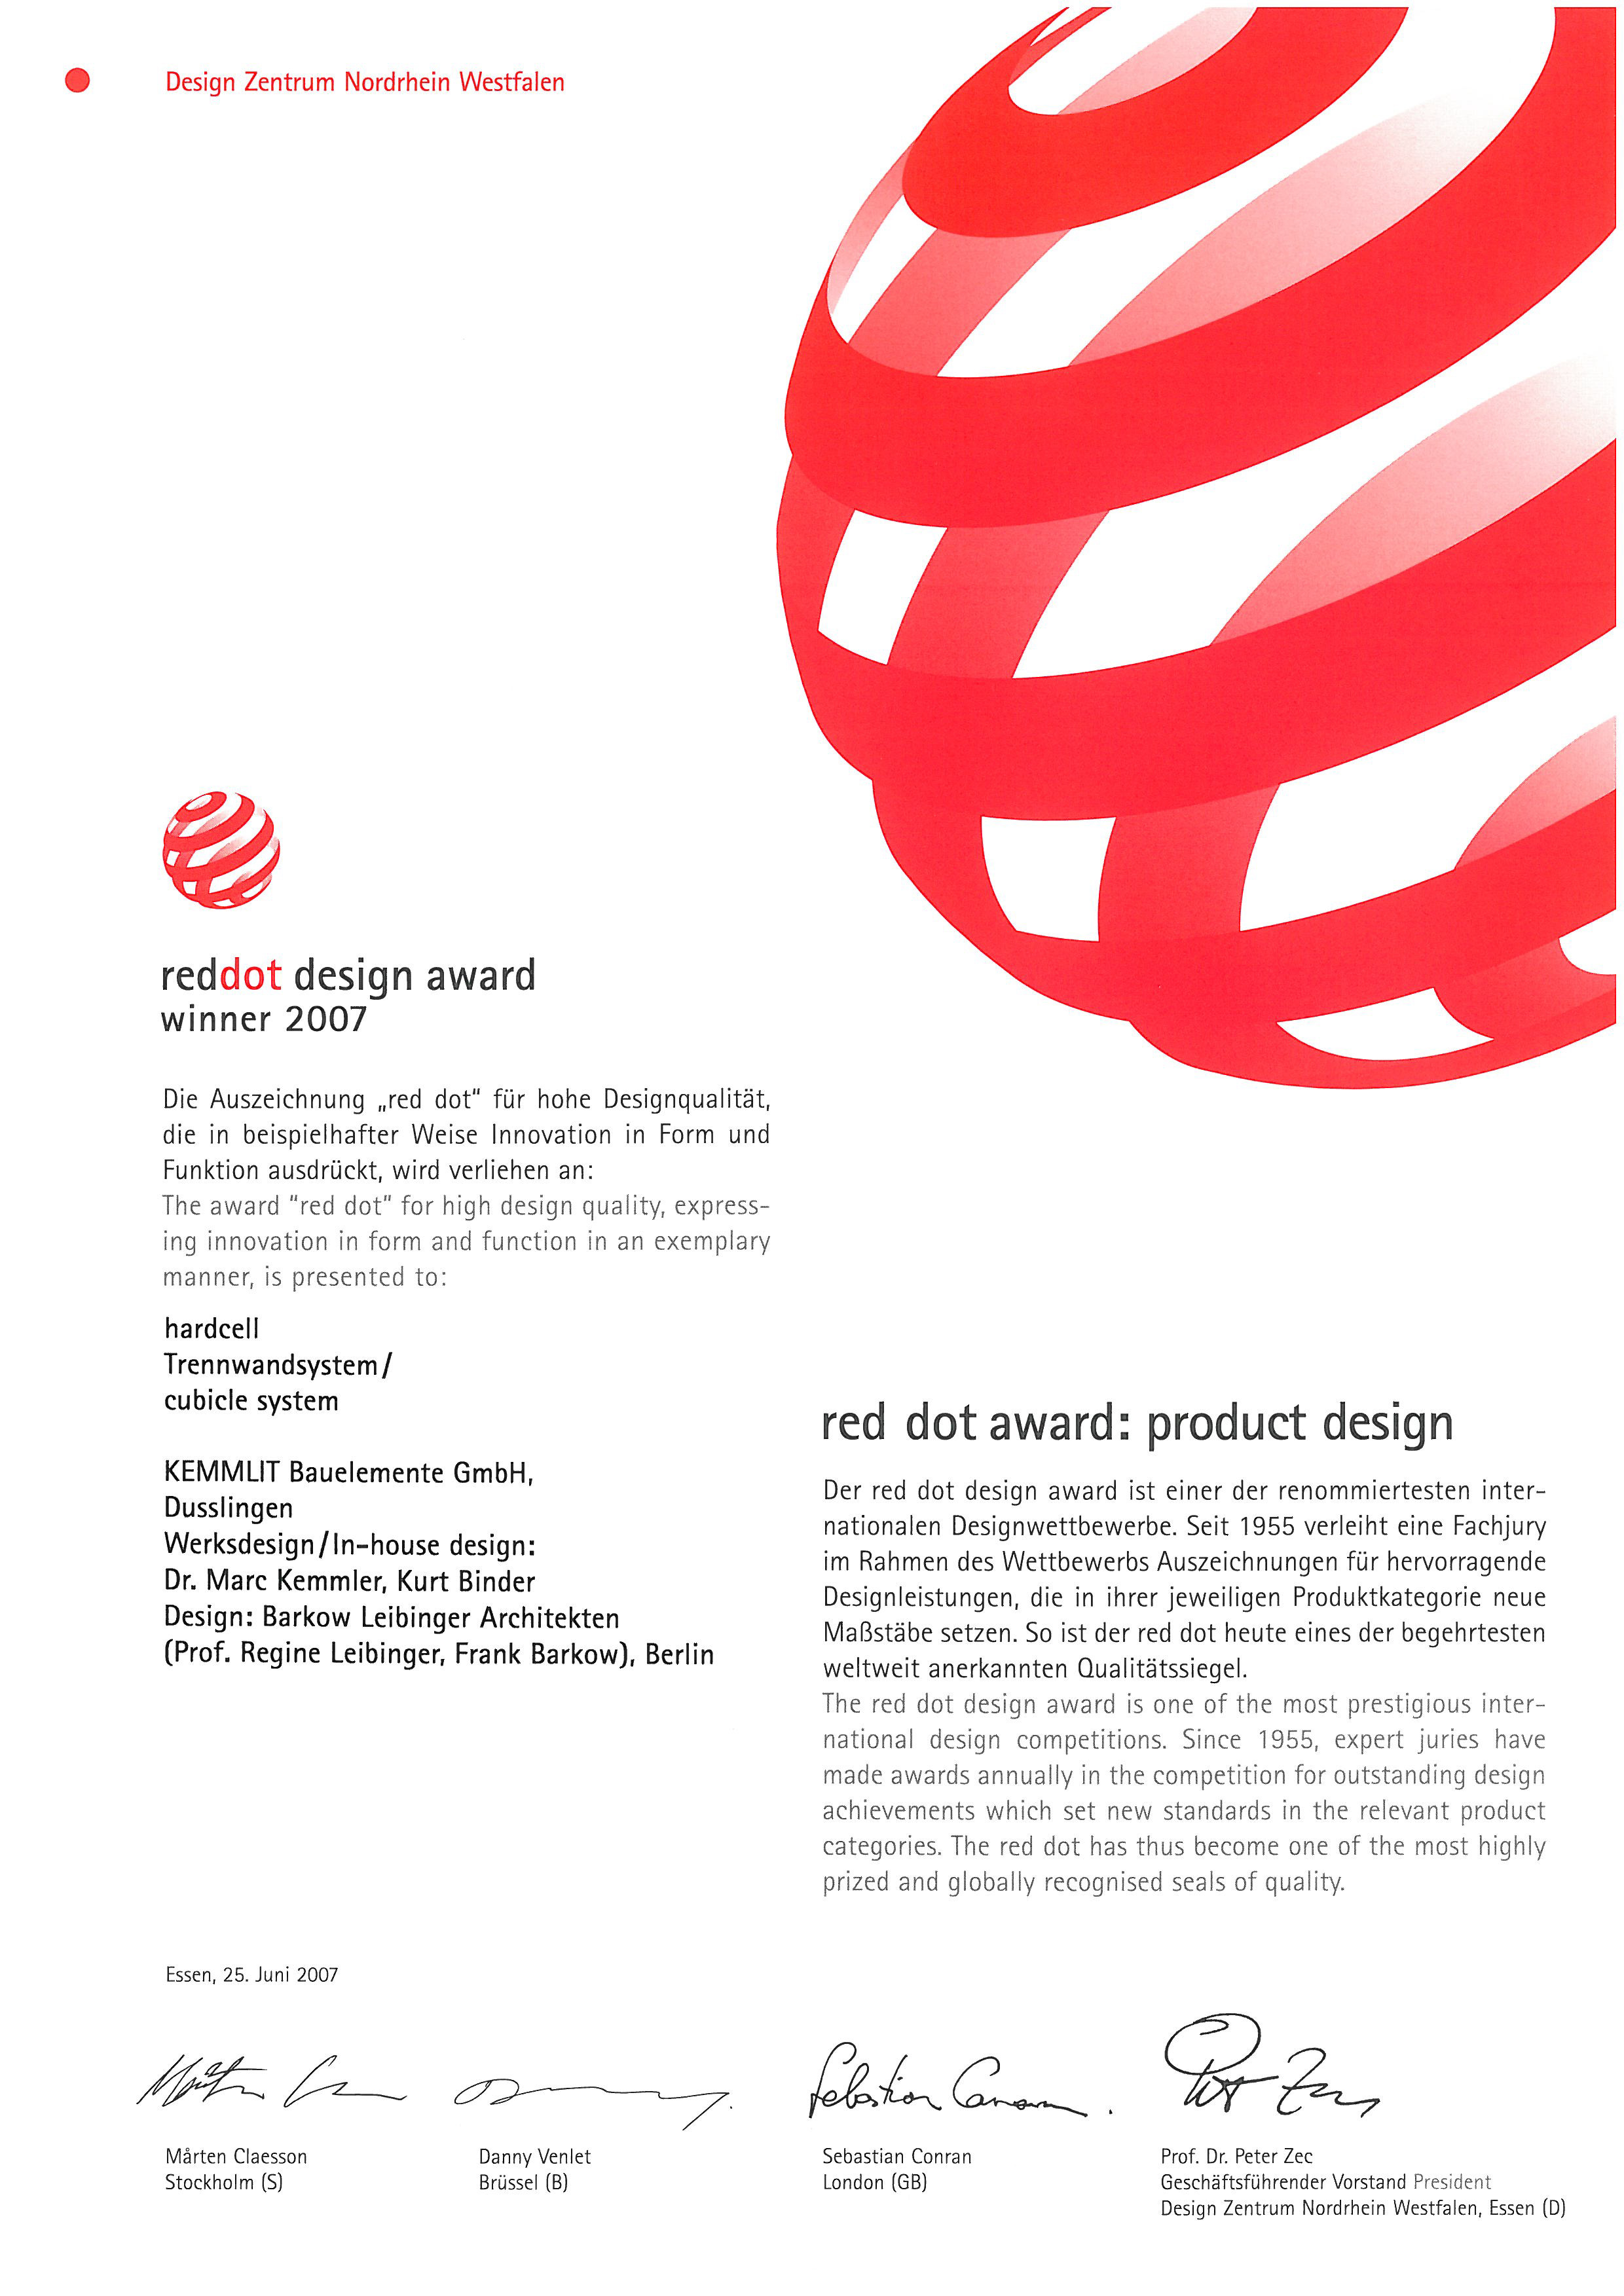 reddot Design Award Soft CELL Cubicle System